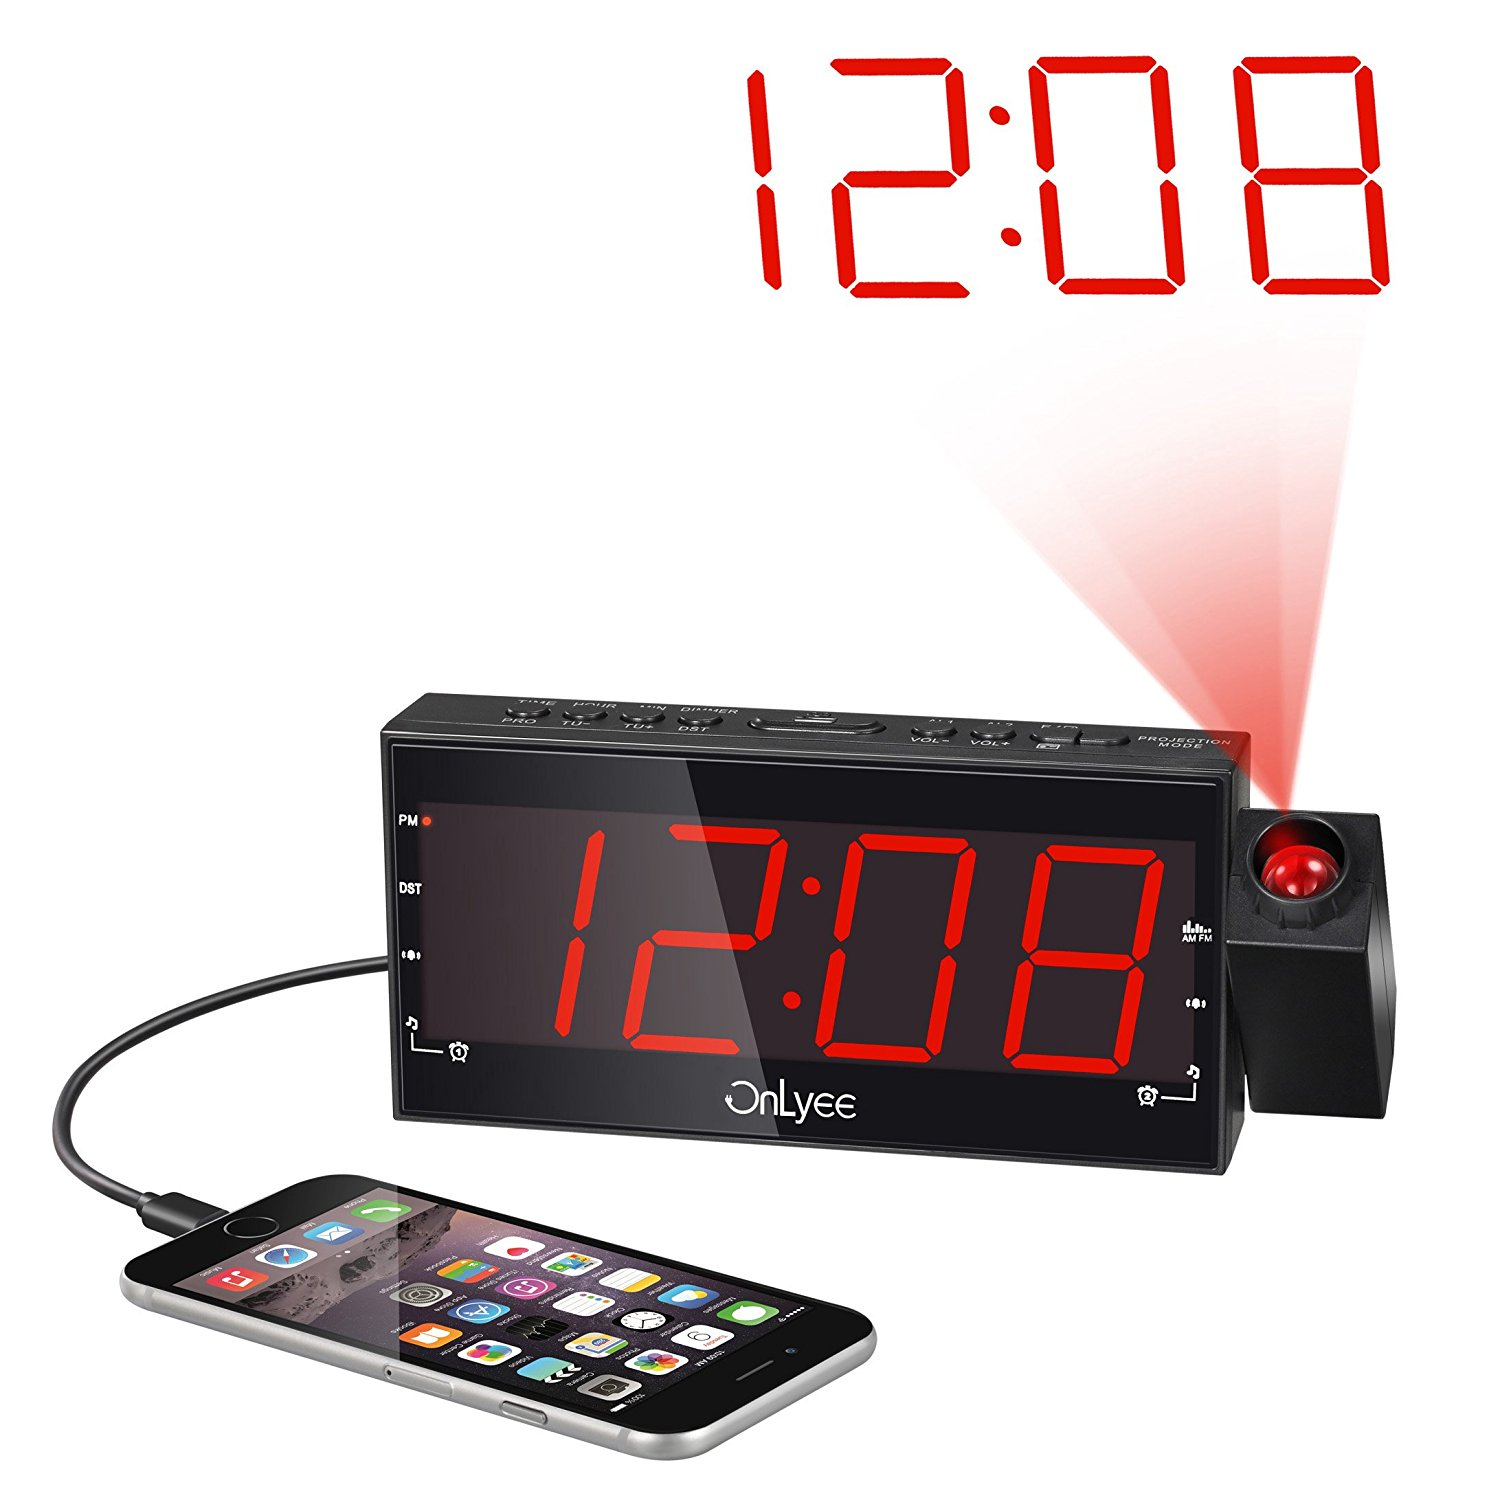 "OnLyee 1.8"" LED Dimmable Projection Clock Radio with AM/FM,USB Charging,Dual Alarm,Battery Backup,Sleep Timer,Snooze image 5"